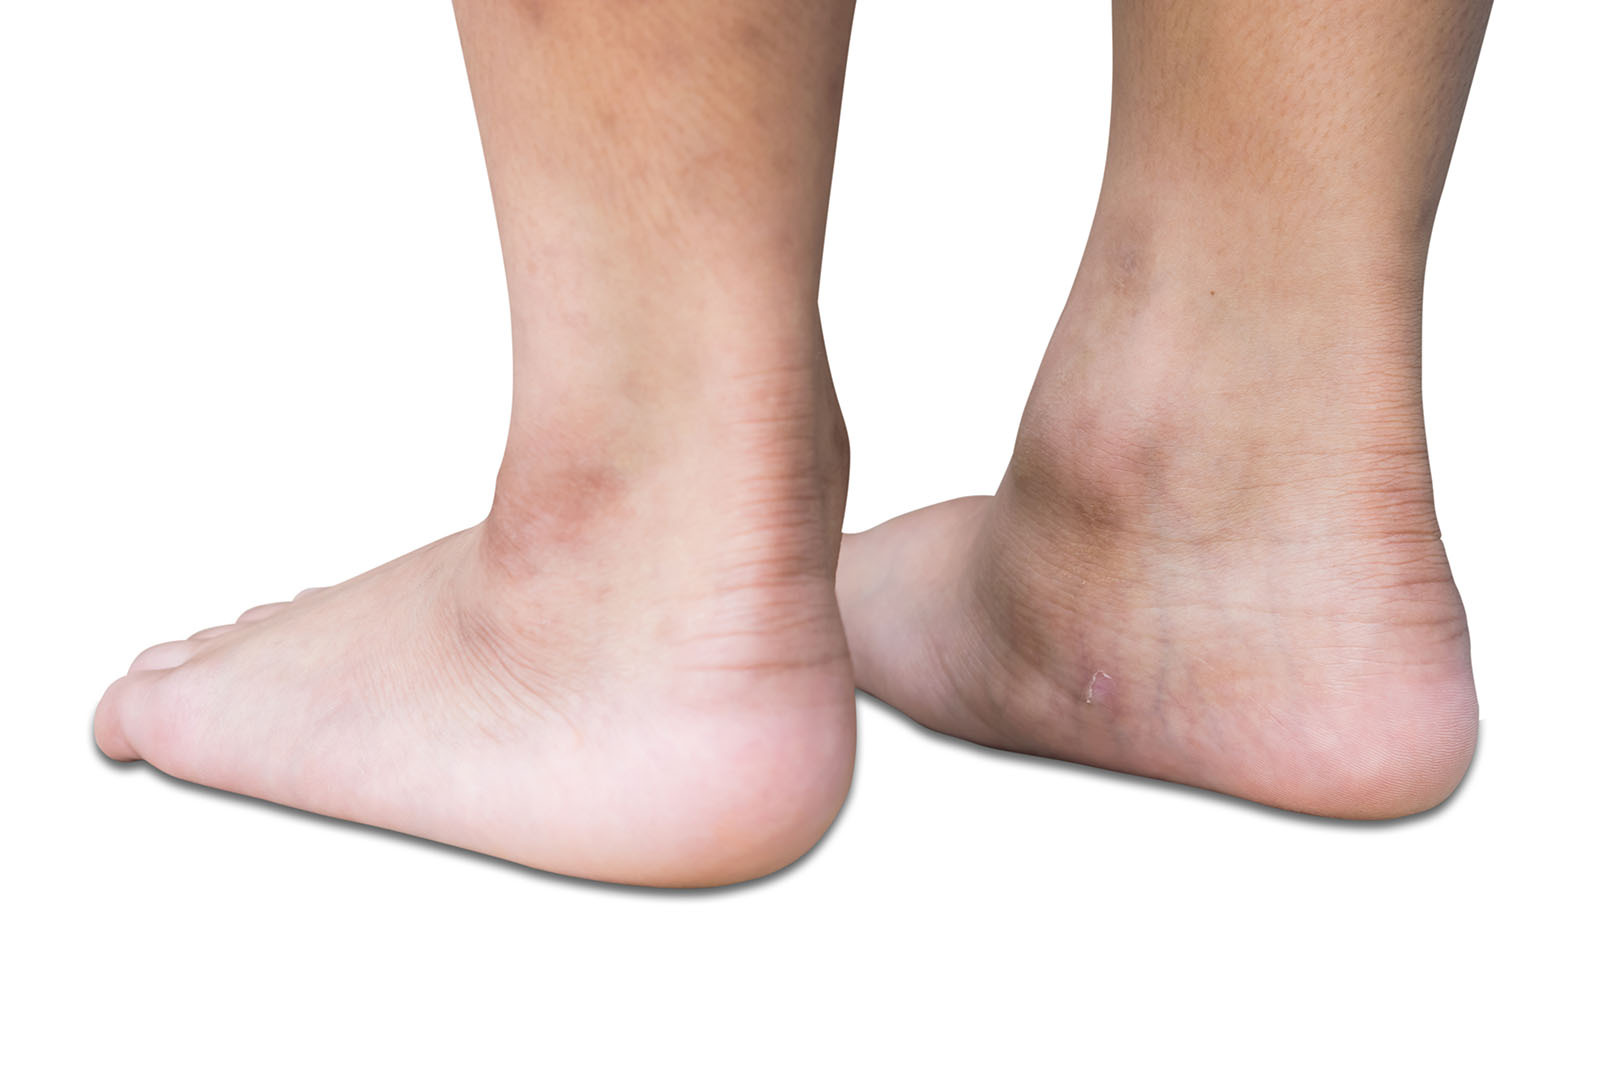 flat feet common problem for many people get rid of your flat feet